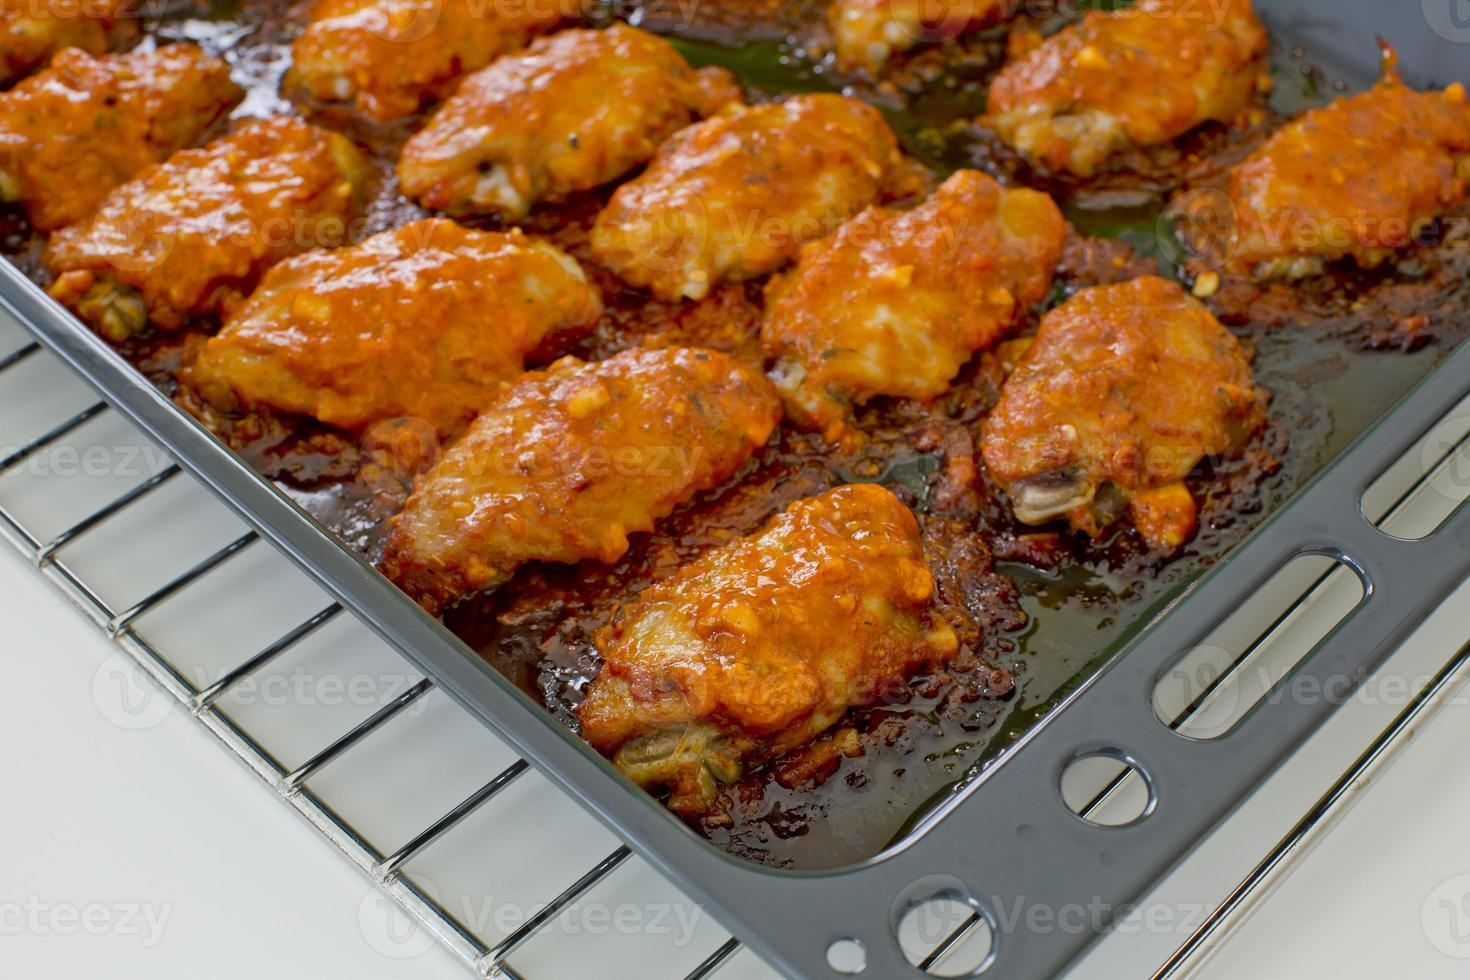 Fried Chicken New Orleans.sweet and spicy on tray ready photo